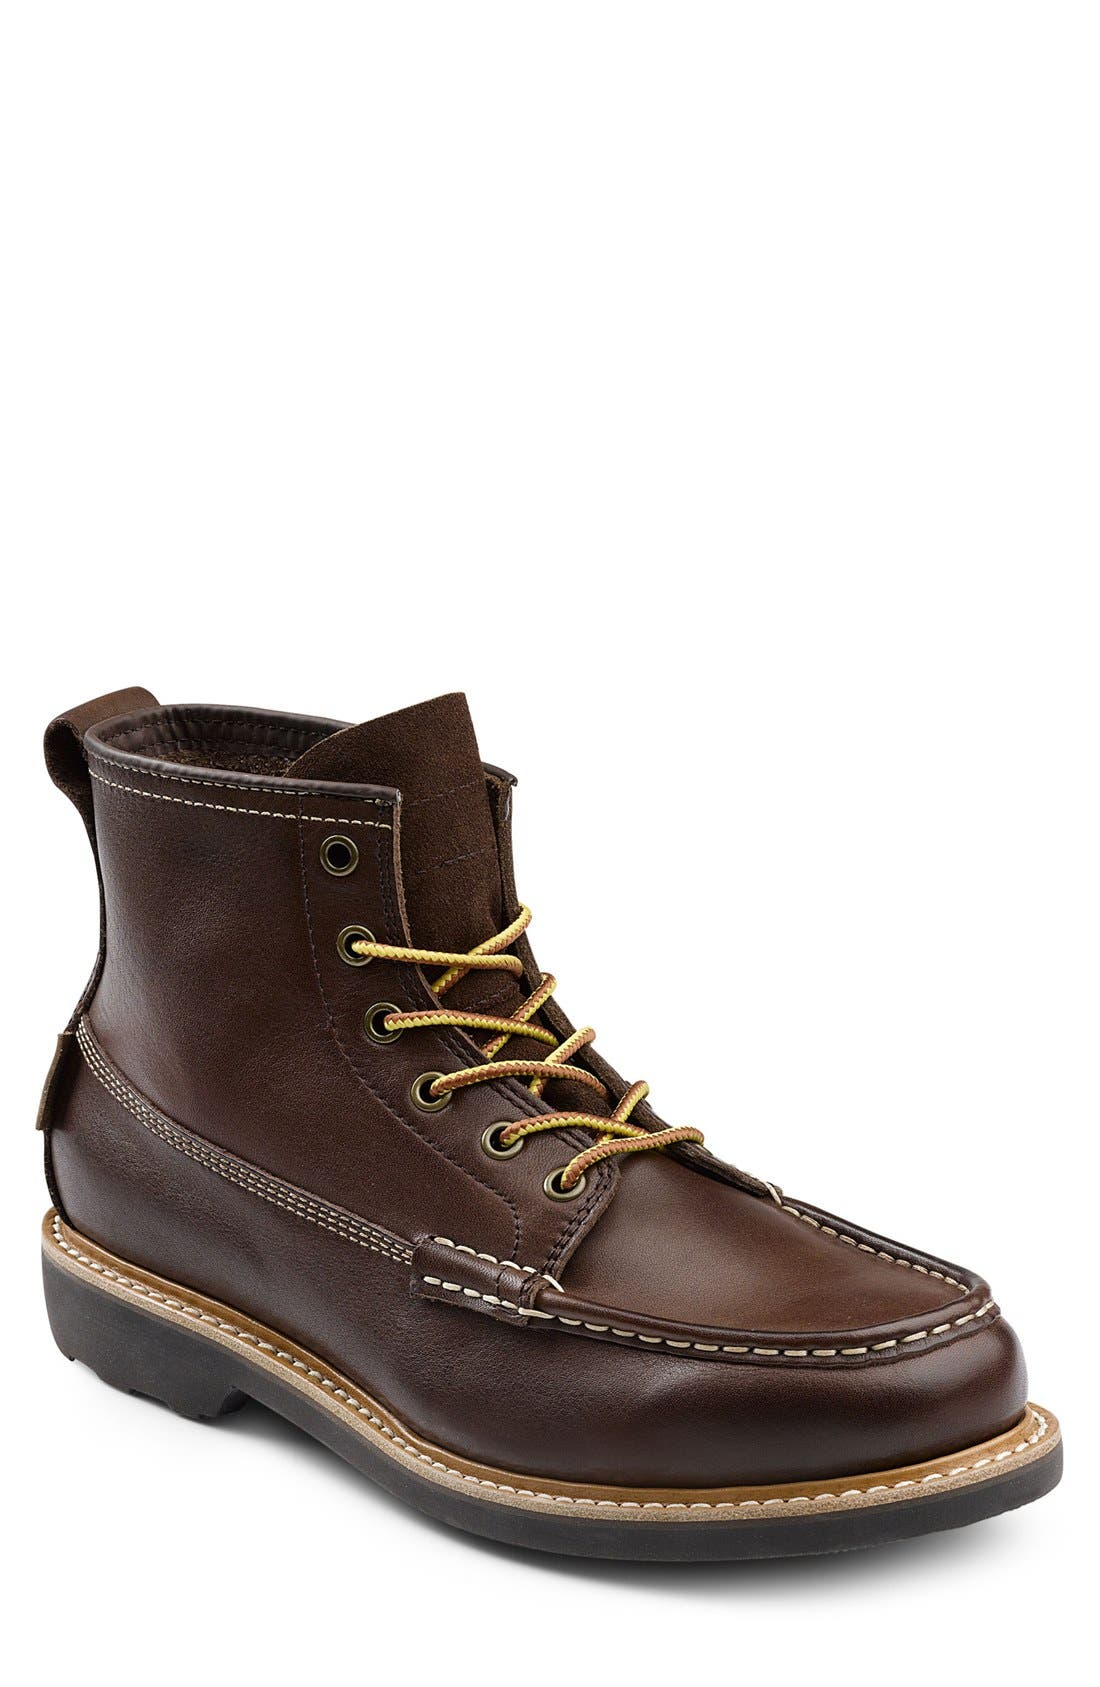 'Ashby' Moc Toe Boot,                         Main,                         color, Mahogany